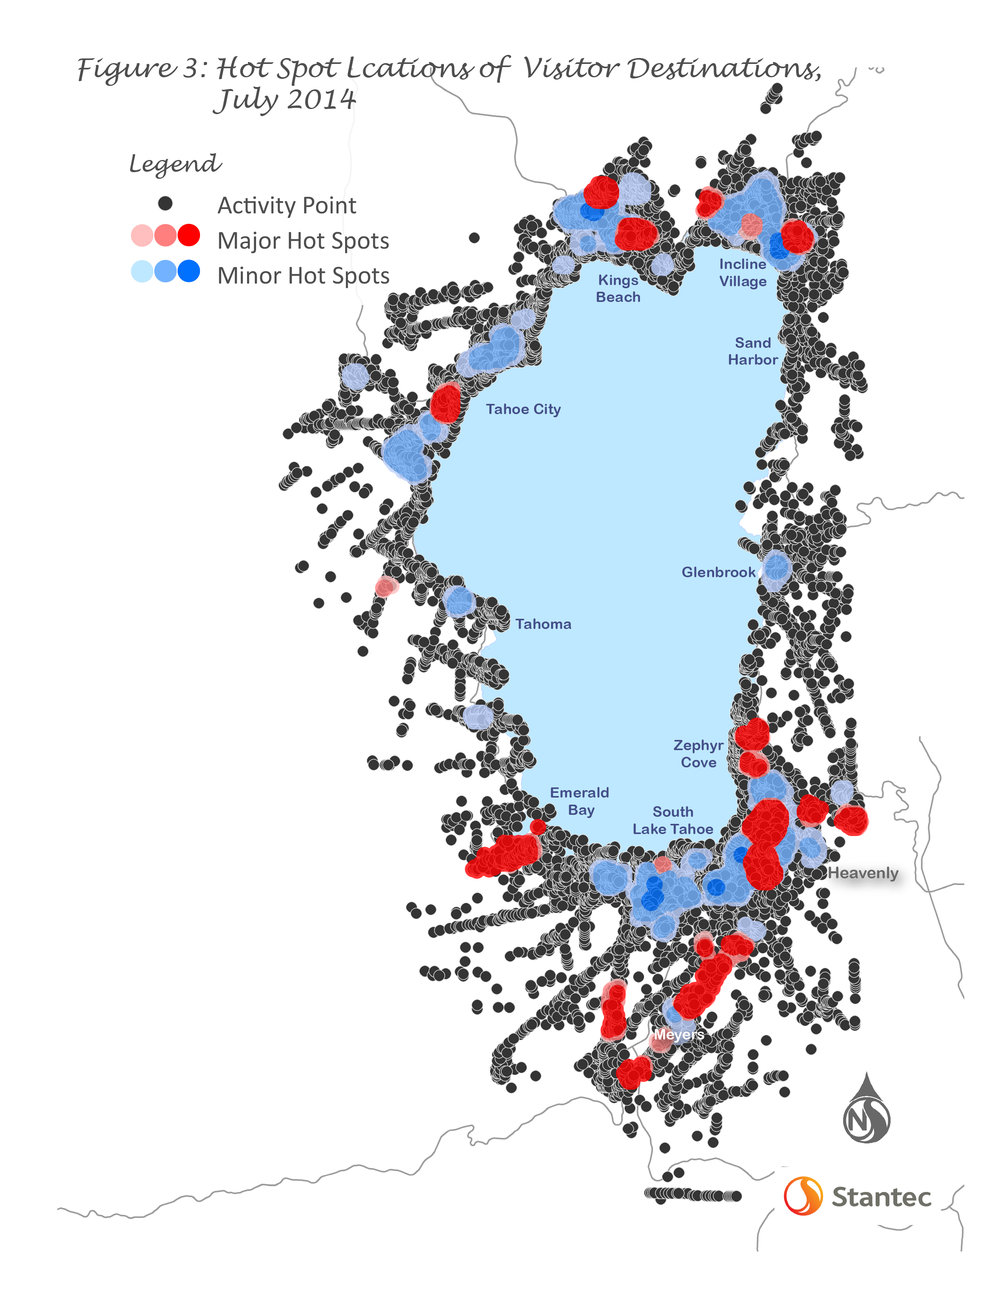 The Linking Tahoe: Multimodal Transportation Management Plan included detailed recommendations for transit services and route, prioritized gaps in bikeways, proposed sidewalks; and most importantly, identified numerous mobility hub locations throughout the Lake Tahoe Basin and at key interception points.  An overall summary of the transit recommendations is shown in Figure 4.